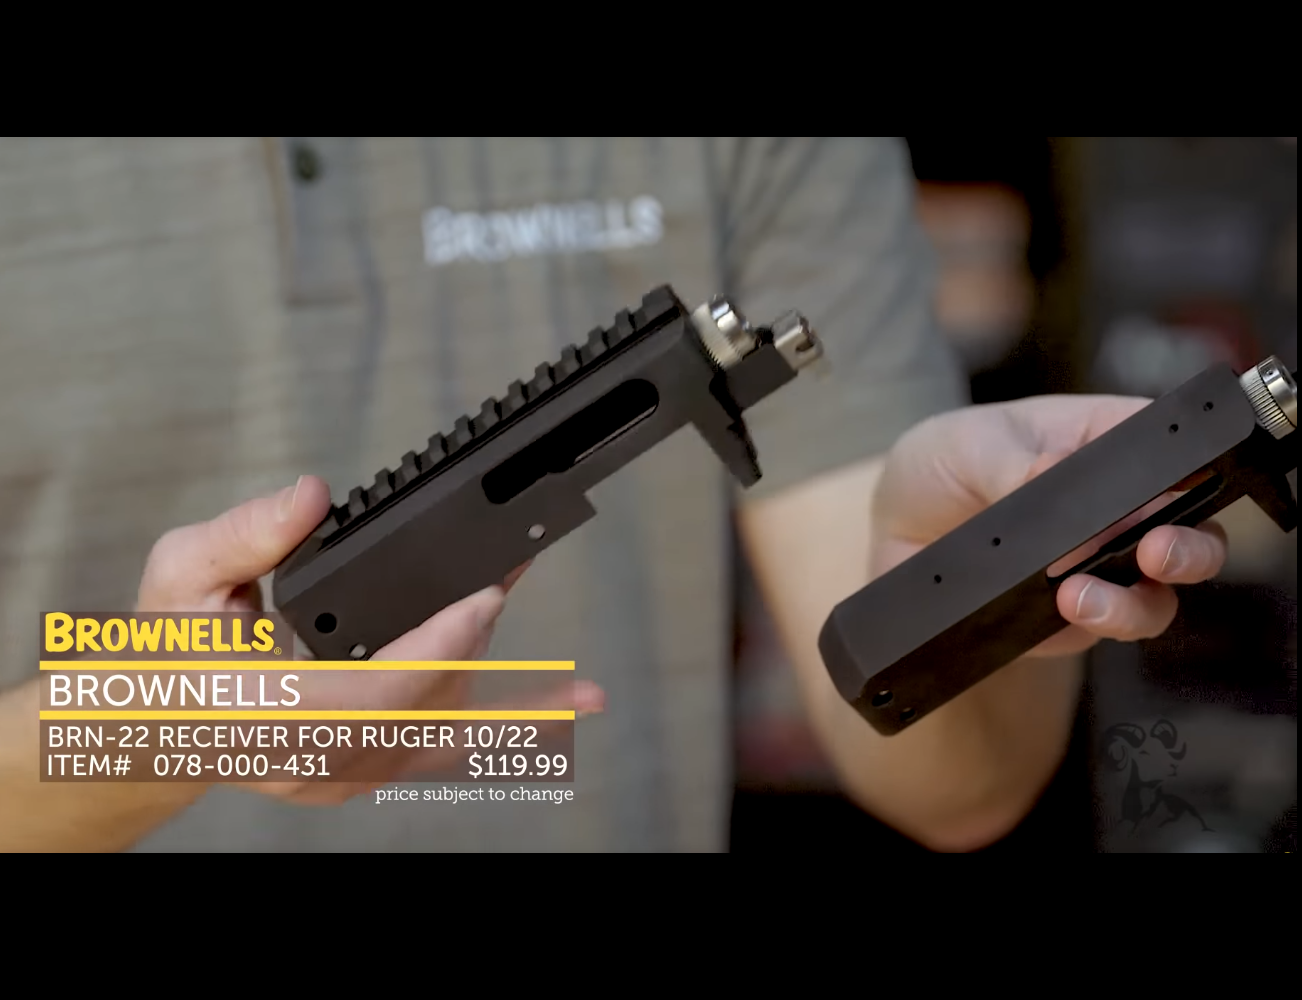 BROWNELLS ANNOUNCES NEW BRN-22T TAKEDOWN STRIPPED RECEIVER FOR THE RUGER® 10/22®